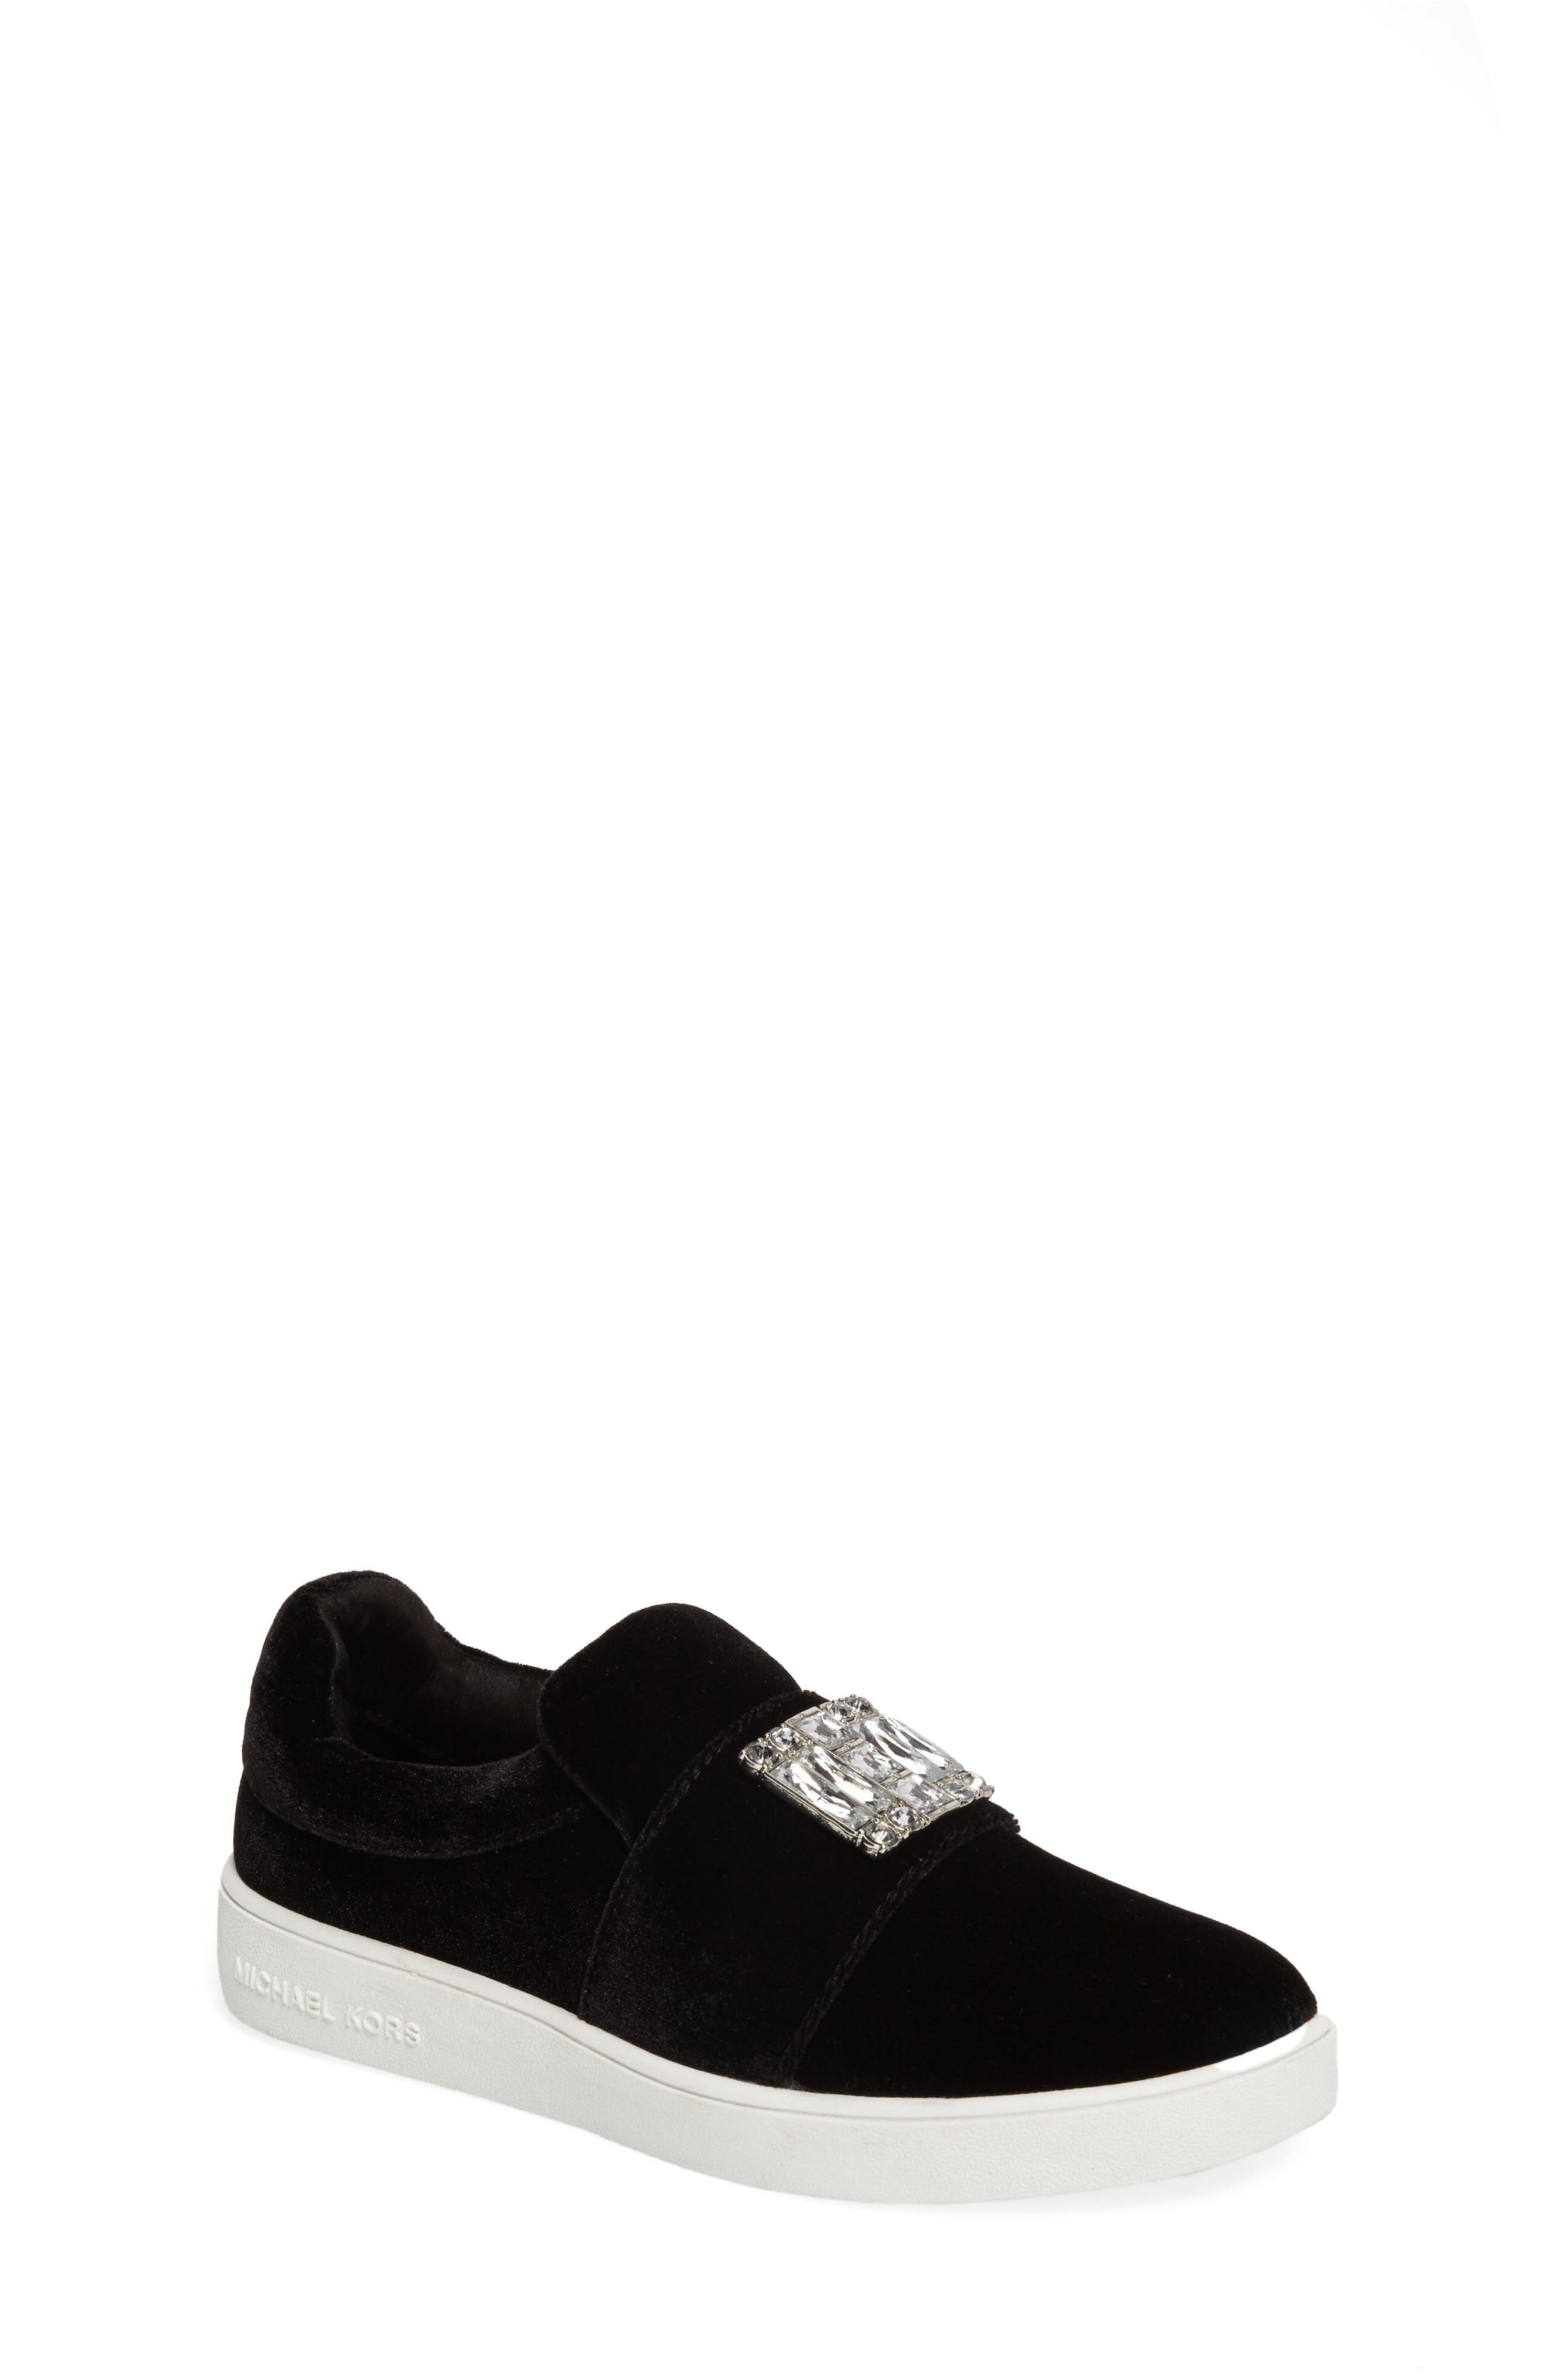 Alternate Image 1 Selected - MICHAEL Michael Kors Ivy Dream Embellished Slip-On Sneaker (Little Kid & Big Kid)